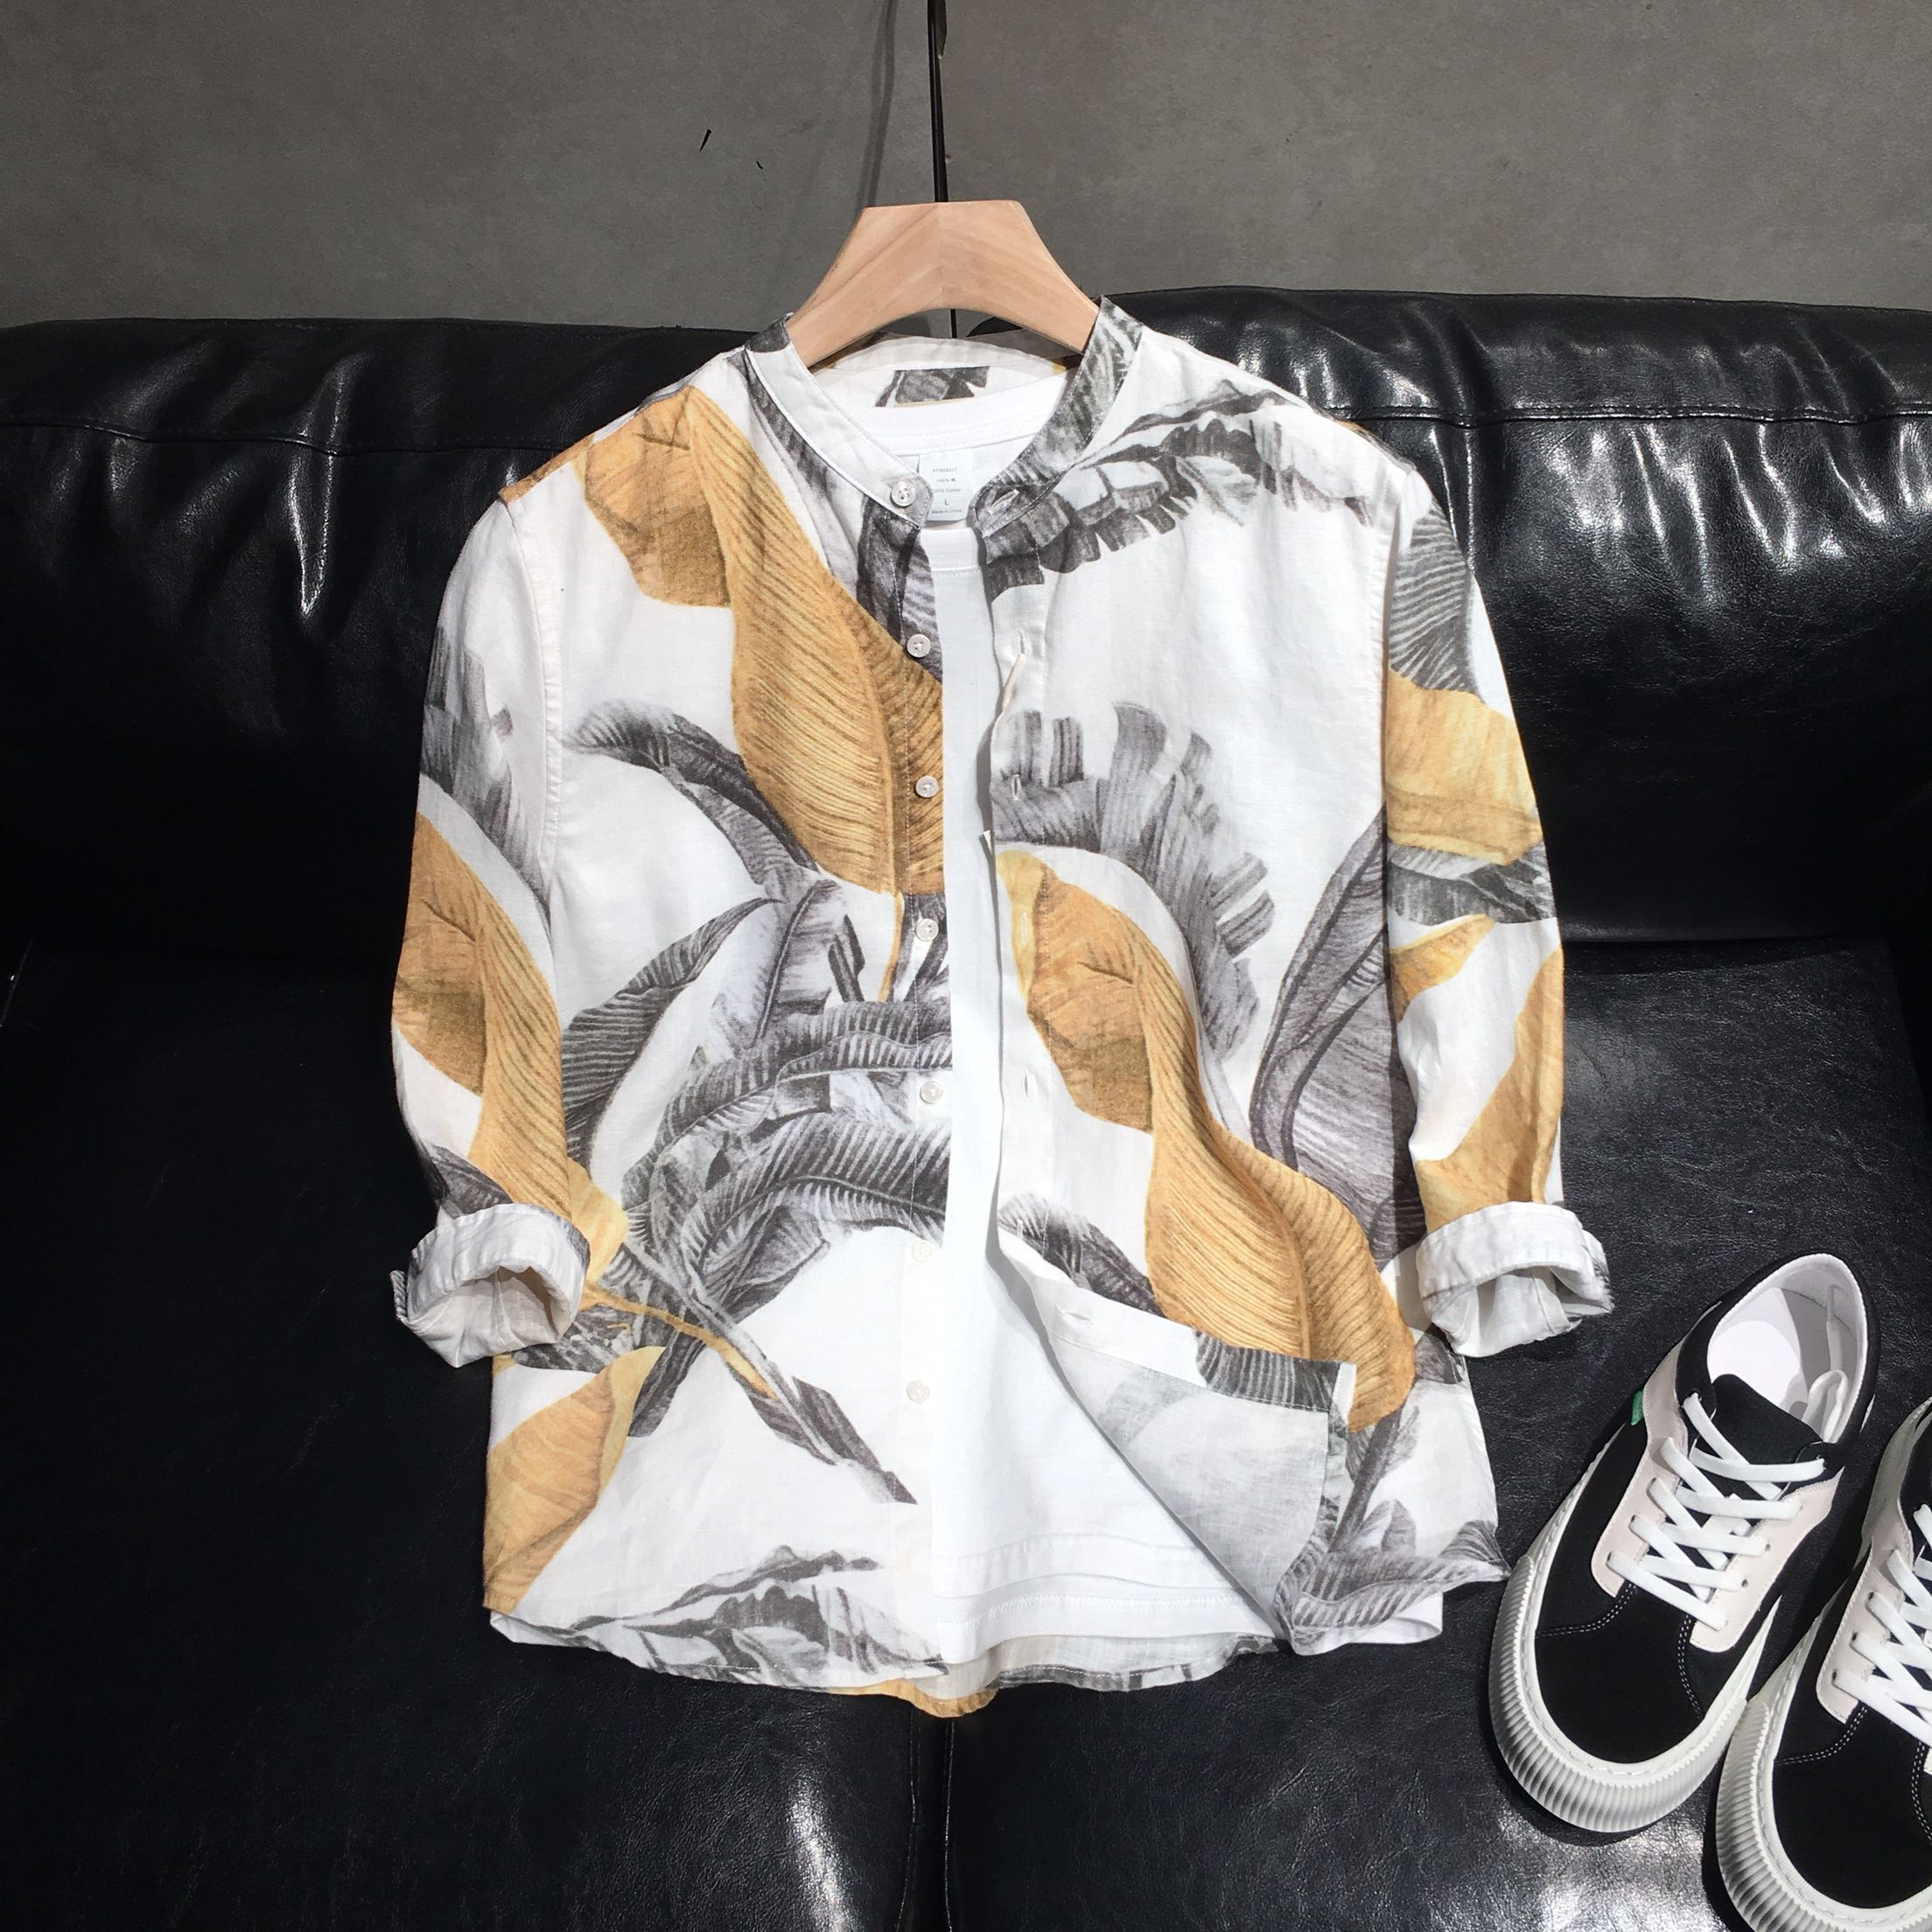 Single Homme original mens creative printed linen Quarter Sleeve Shirt 2021 summer new casual and breathable fashion